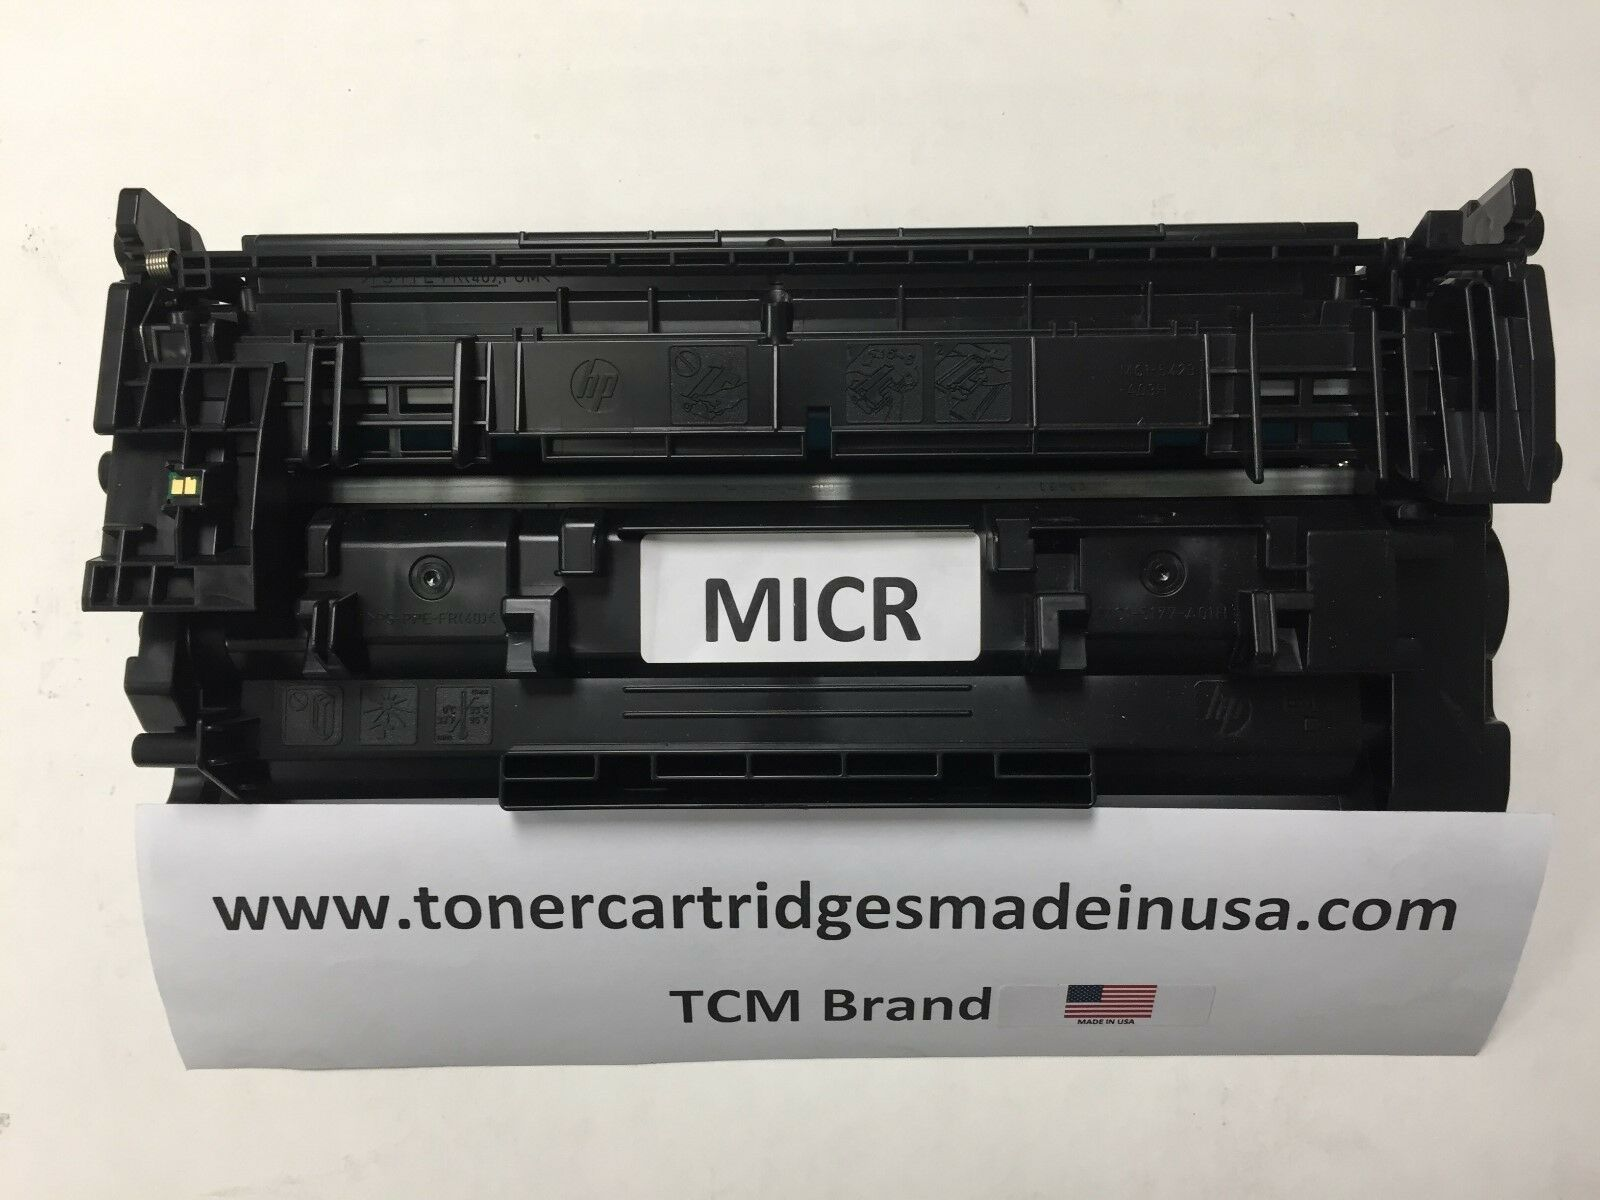 USA Advantage Compatible Toner Cartridge Replacement for HP 26A CF226A Black MICR,1 Pack